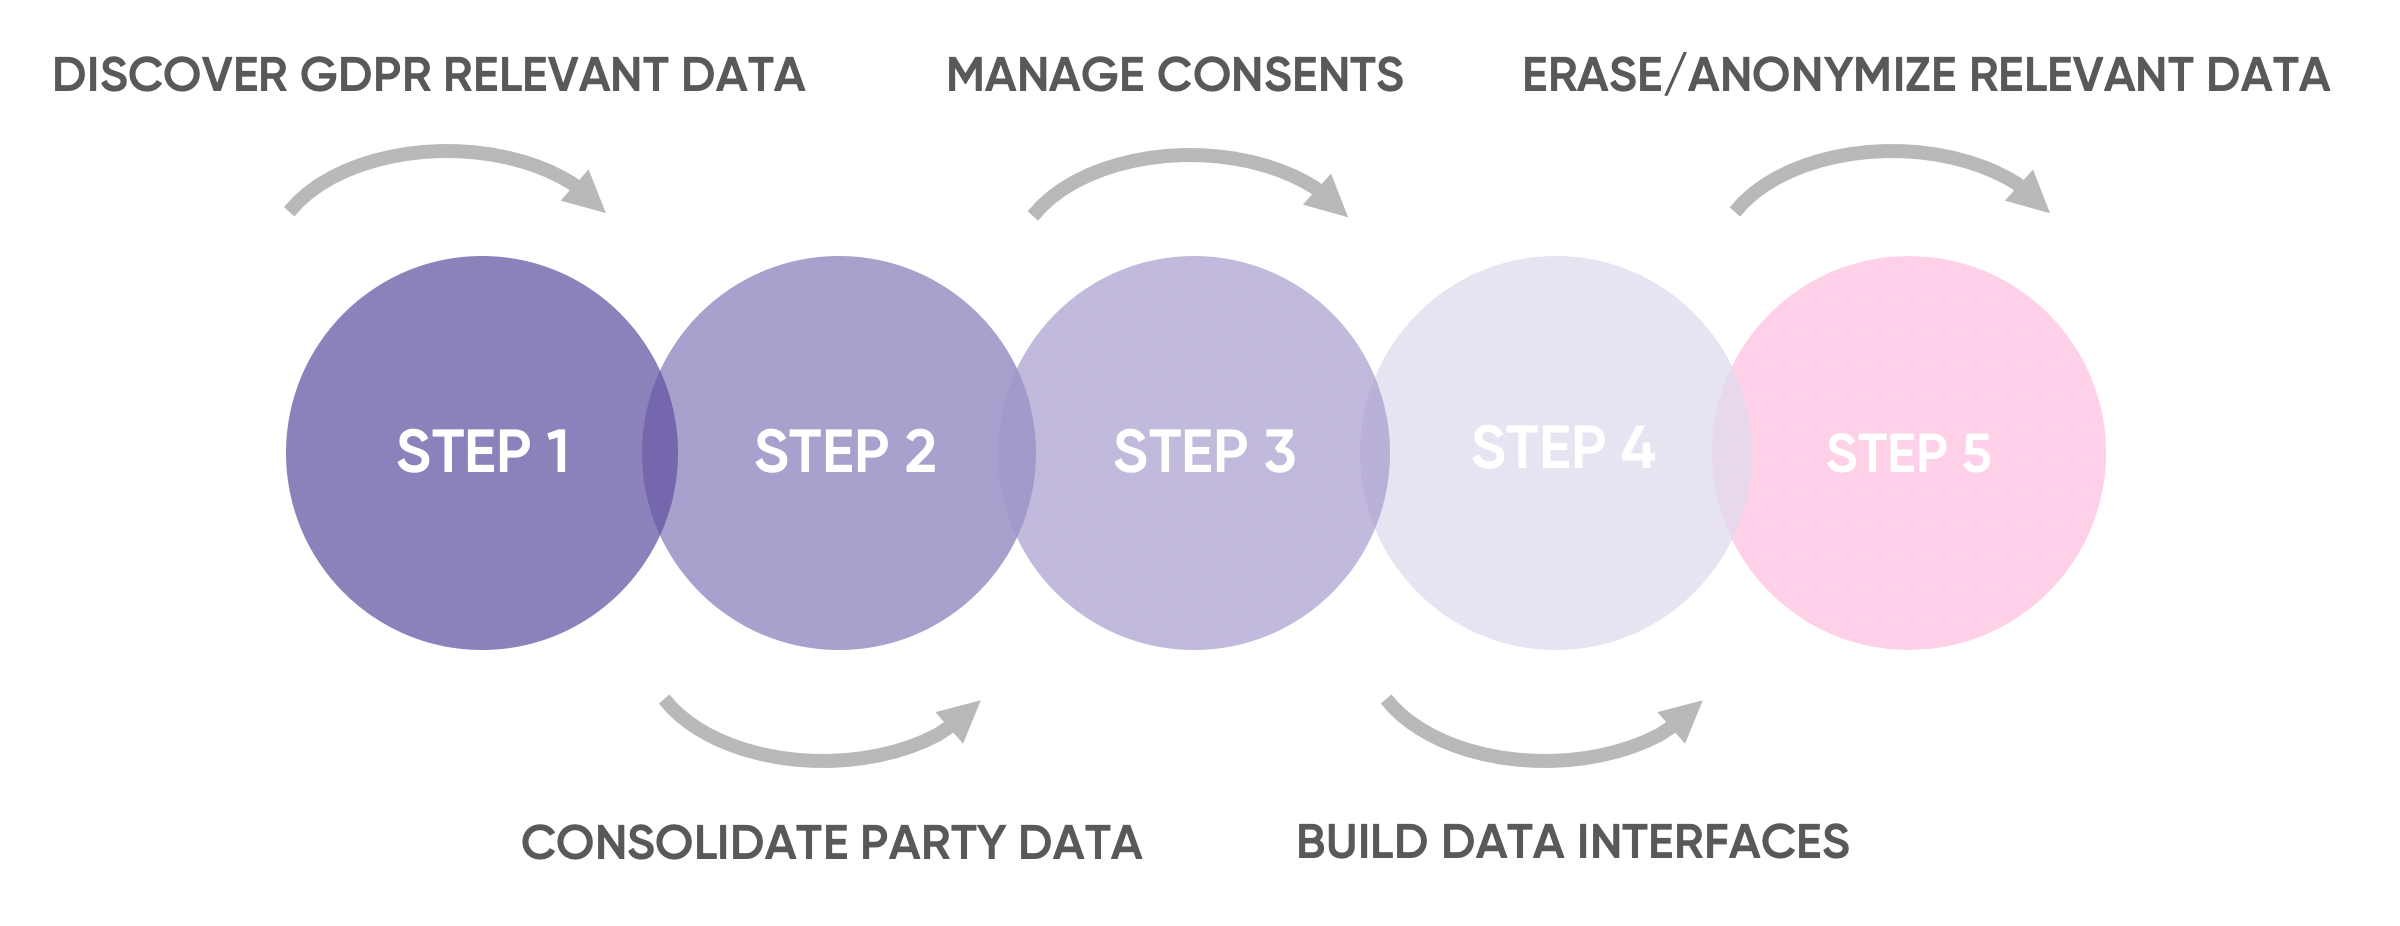 Steps towards GDPR compliance with Ataccama